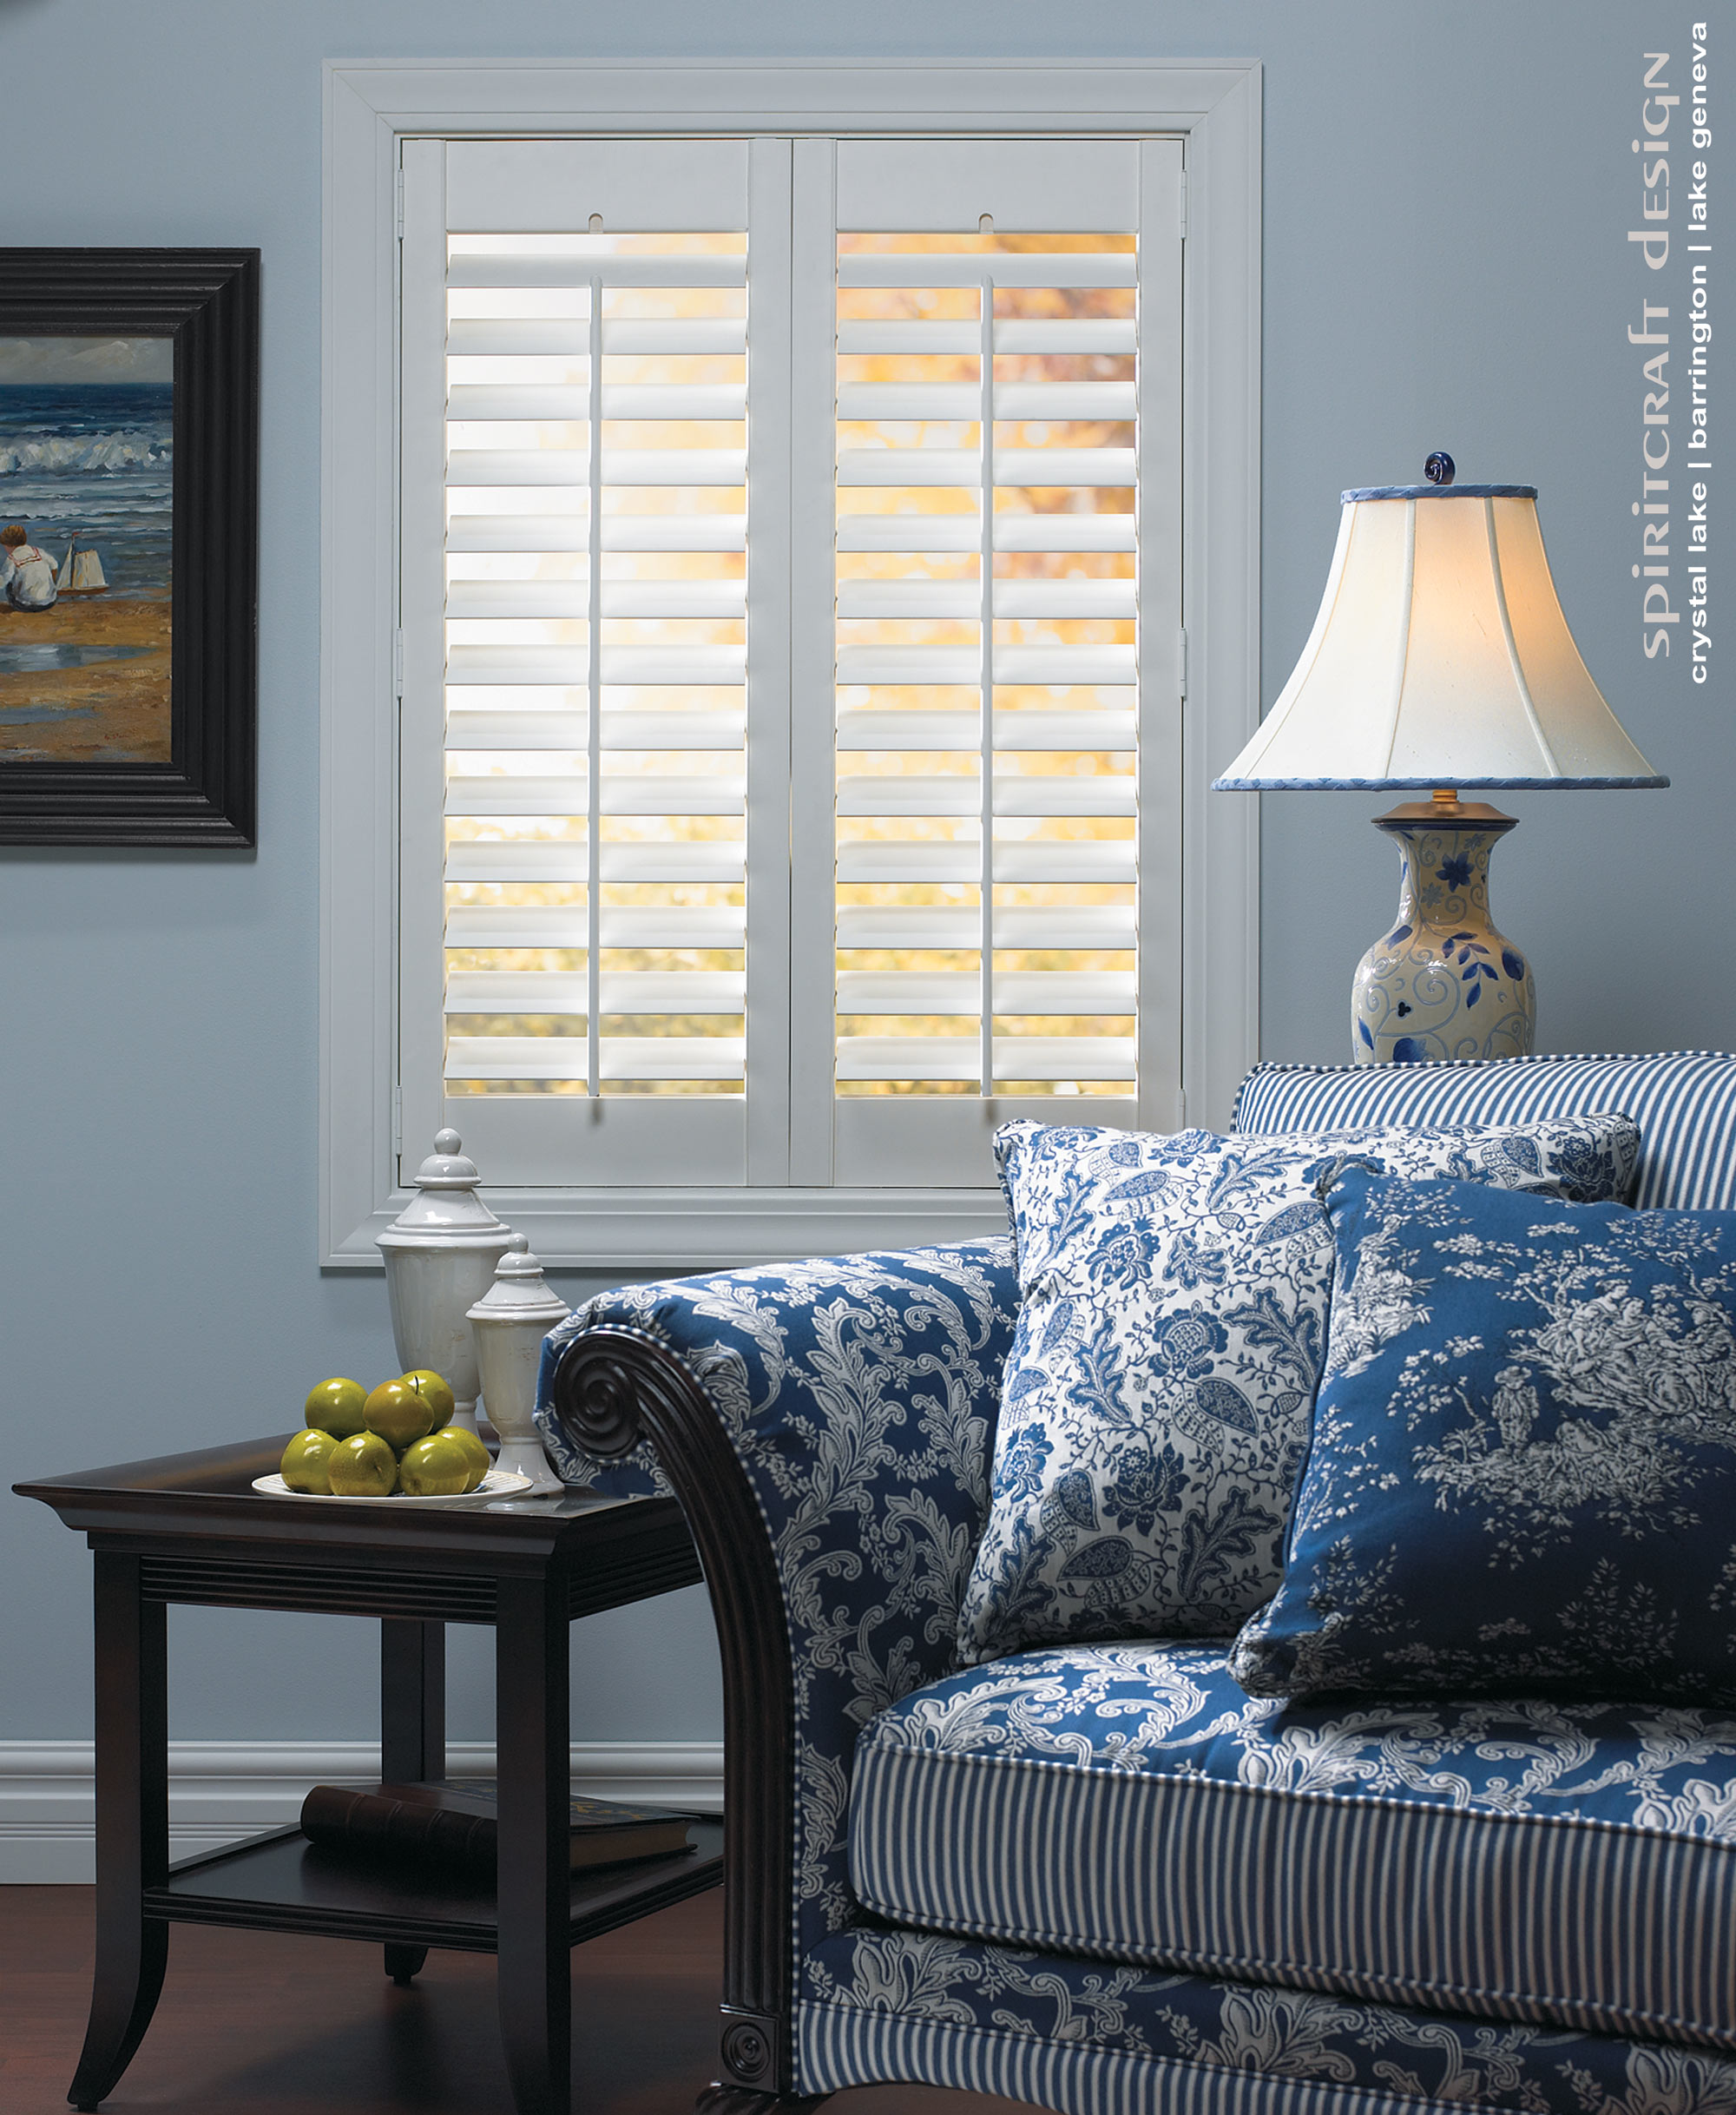 About spiritcraft design and custom window treatments for Custom window design